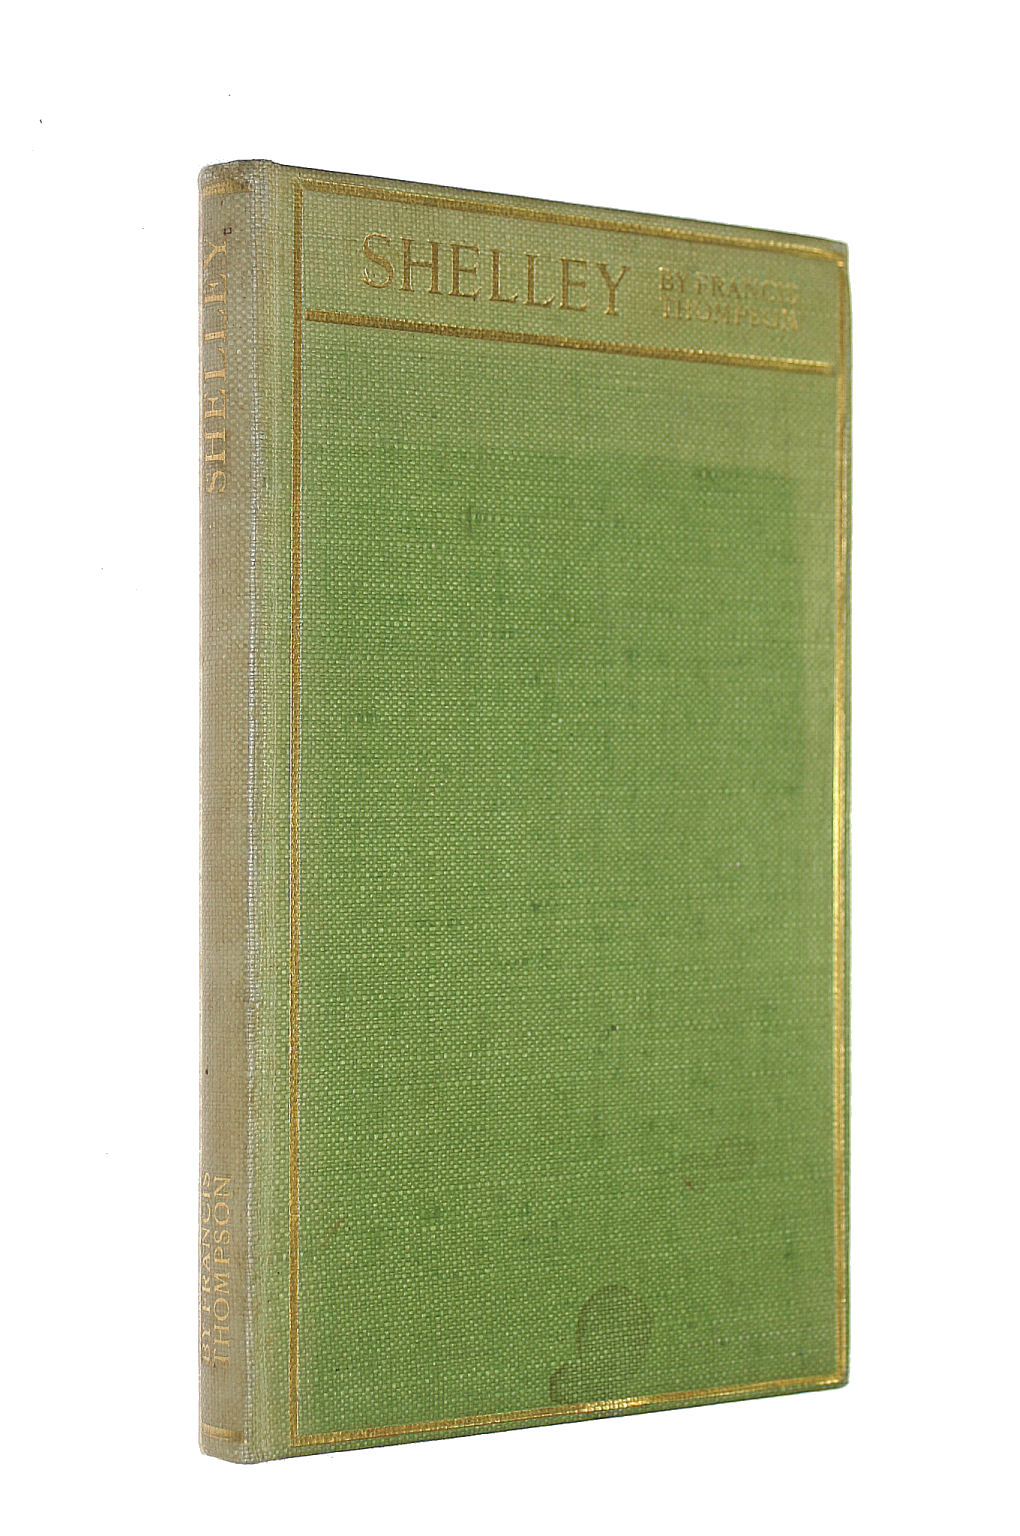 Image for SHELLEY